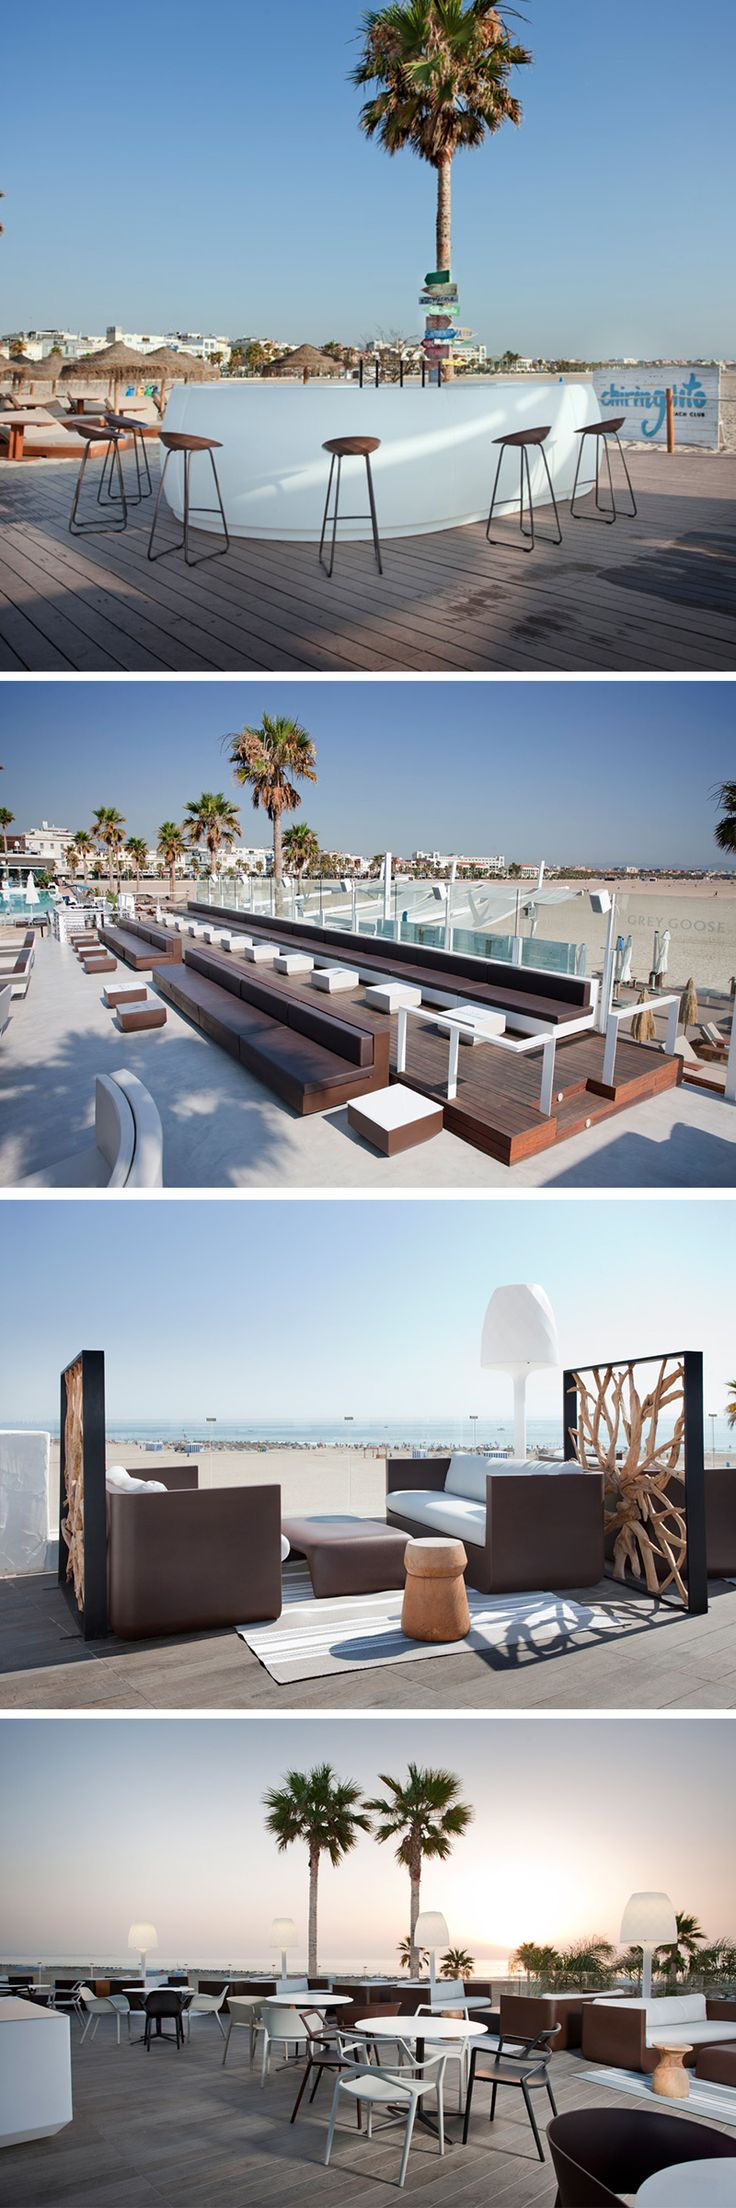 This beach club plays the cozy and recall to nature with tones and selected materials. As an extension of the beach in the background. Most of the furniture is from the Vondom brand. These are mainly VELA and ULM collections. What do you think?   #professionalfurniture #beachclub #bar #inspiration #palm #plage #vondom #barazzi